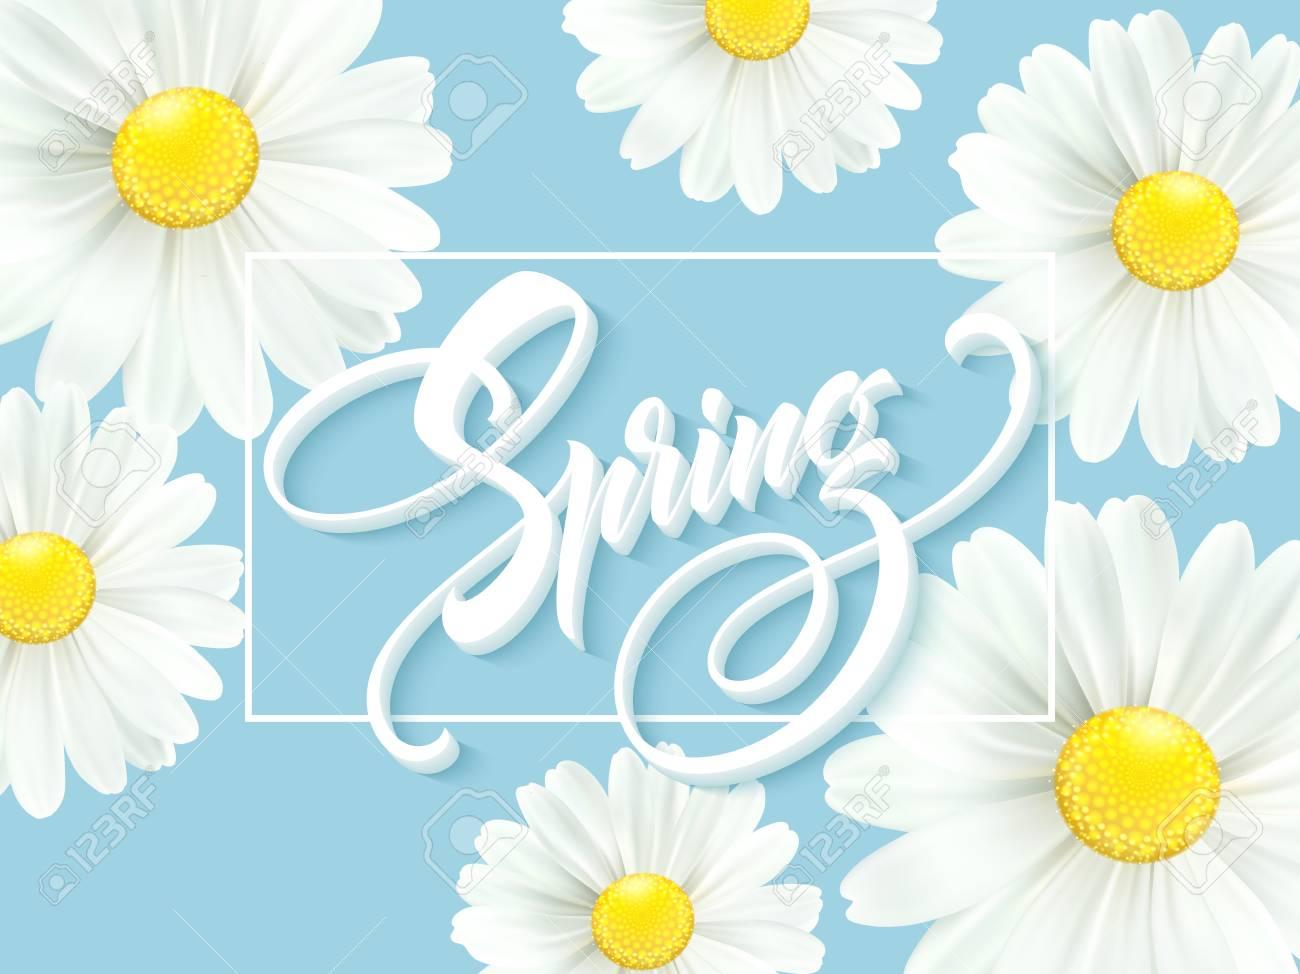 Calligraphic inscription Hello Spring with spring flower - blooming white daisy. Vector illustration - 93533426